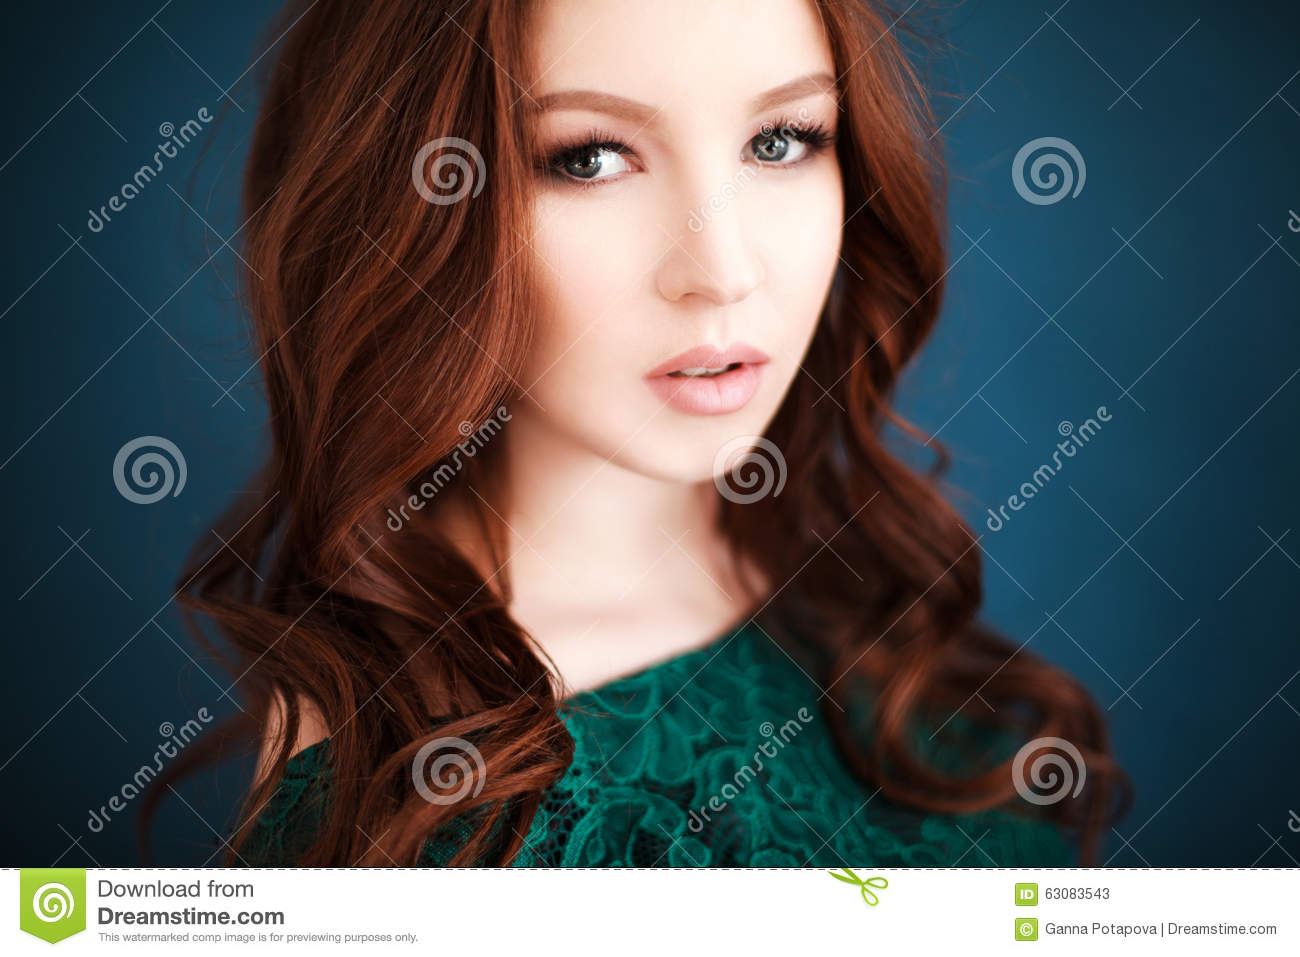 Download Portrait De Belle Femme Dans La Robe Verte De Dentelle Image stock - Image du fashionable, verticale: 63083543